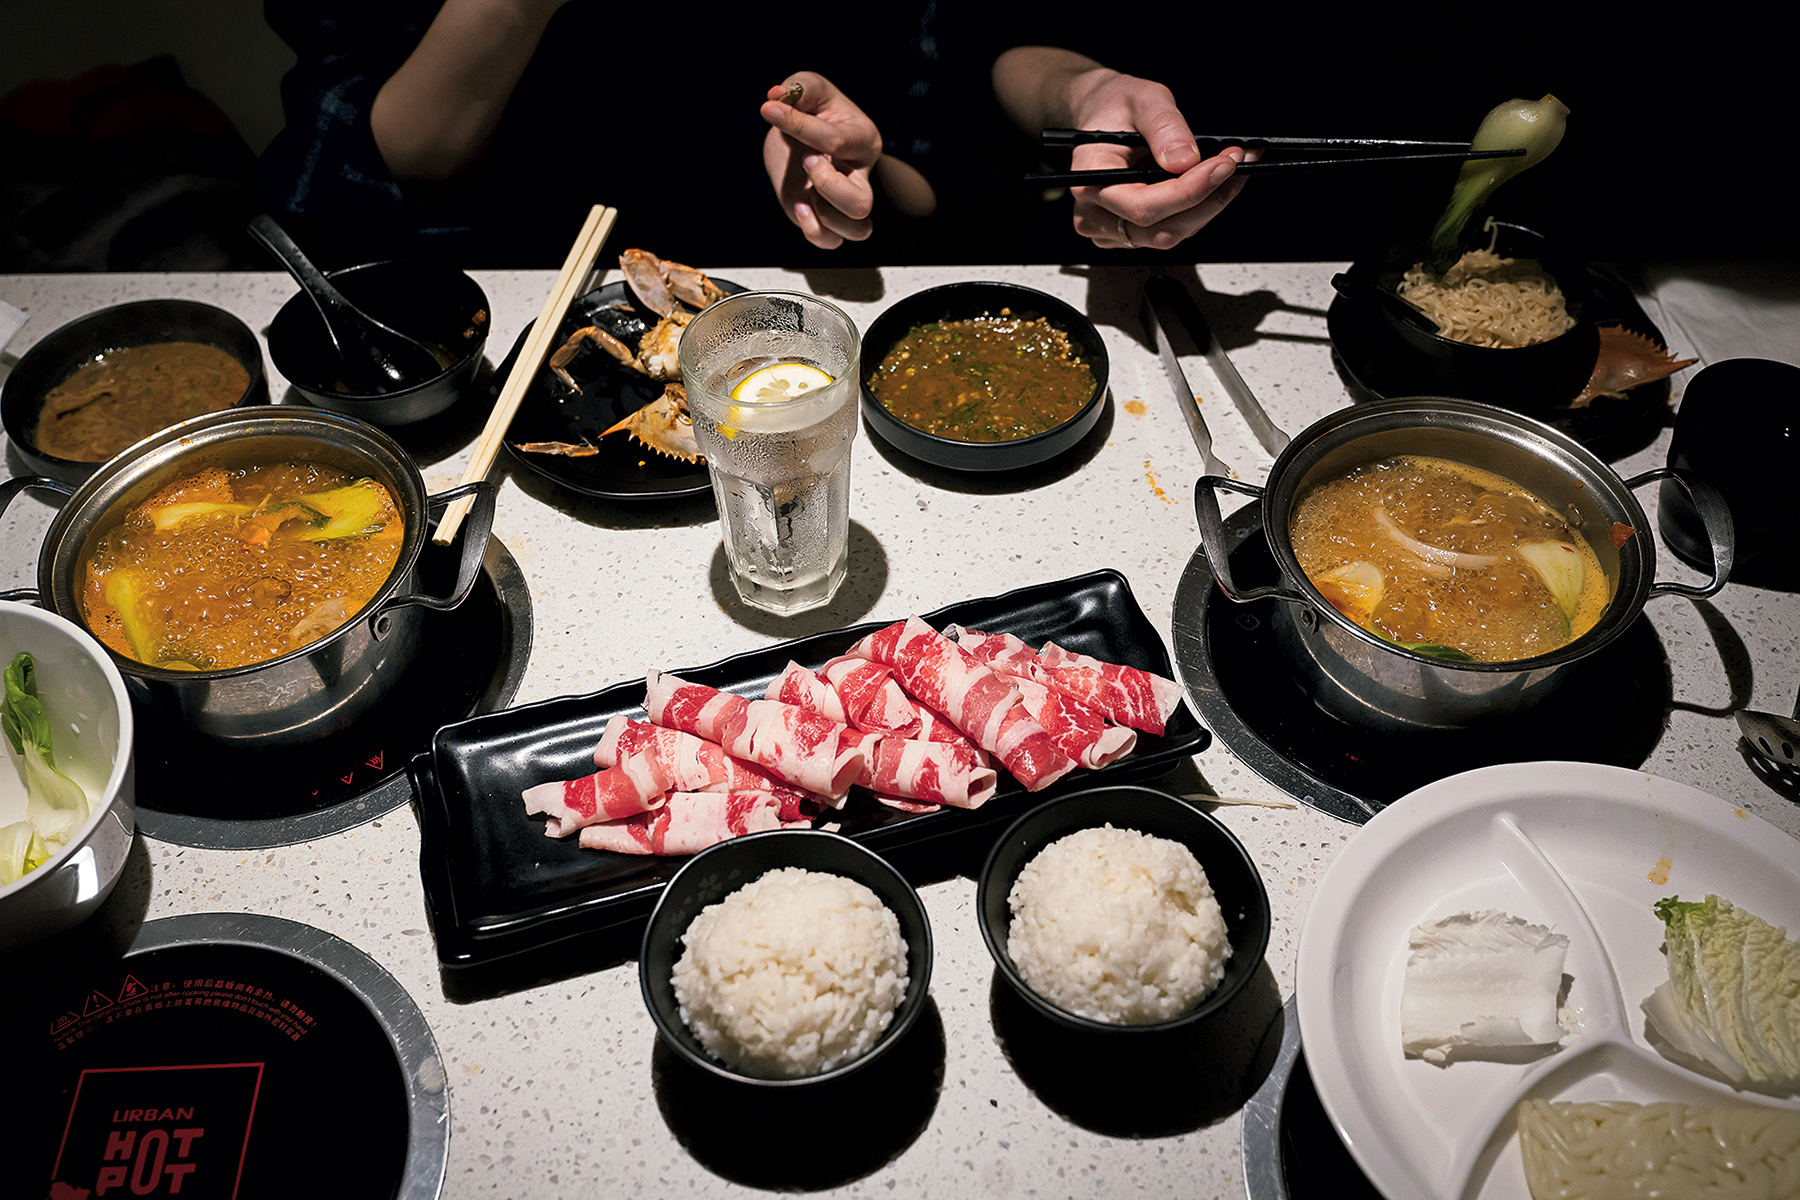 Build-your-own soups at Urban Hot Pot. Photograph by Scott Suchman.